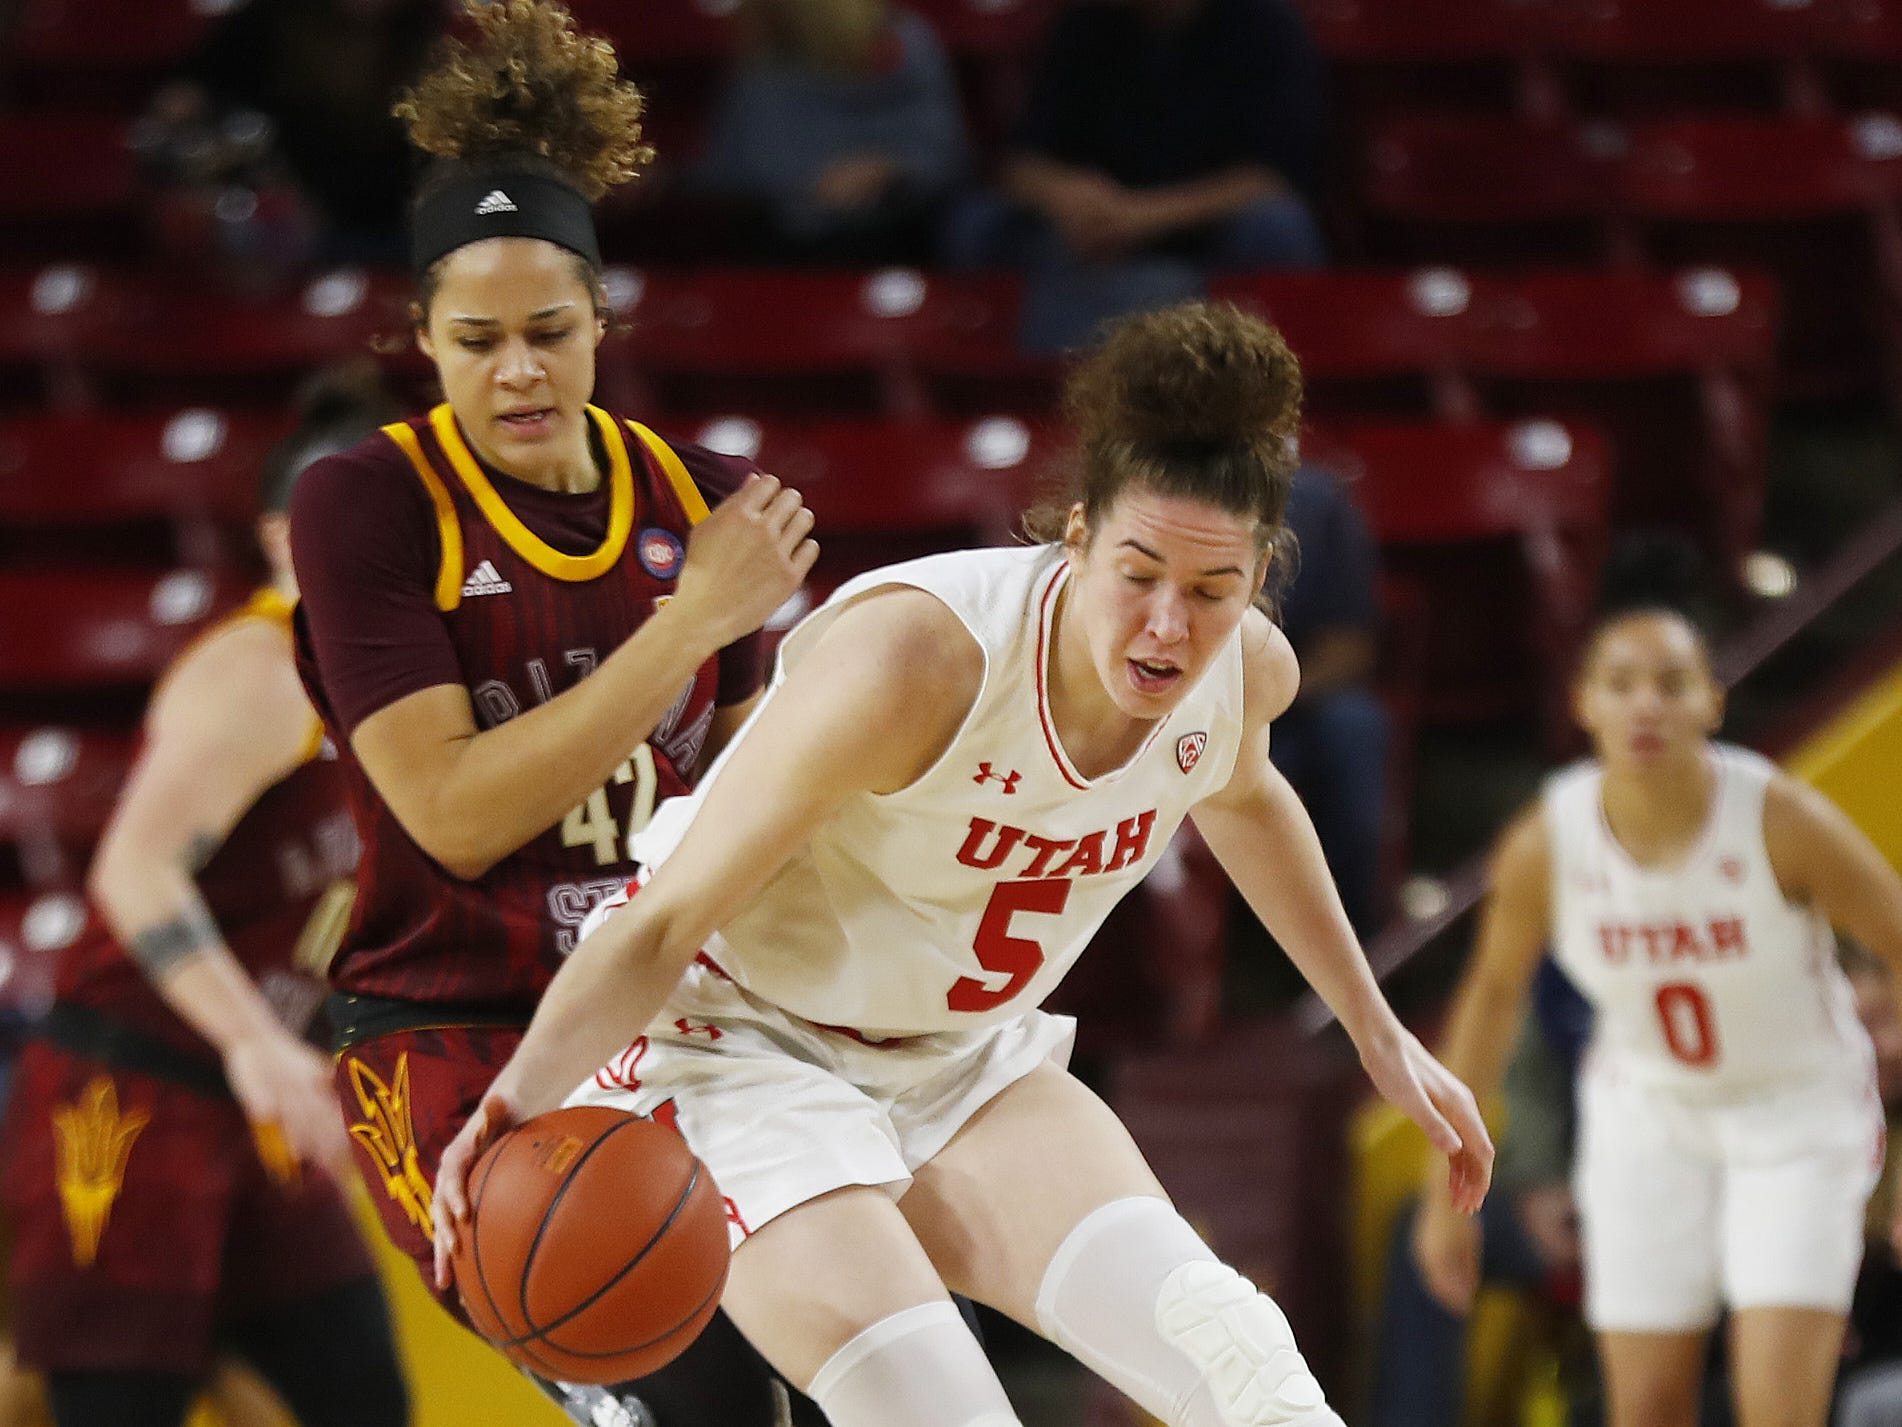 ASU's Kianna Ibis (42) puts pressure on Utah's Megan Huff (5) during the first half at Wells Fargo Arena in Tempe, Ariz. on February 17, 2019.